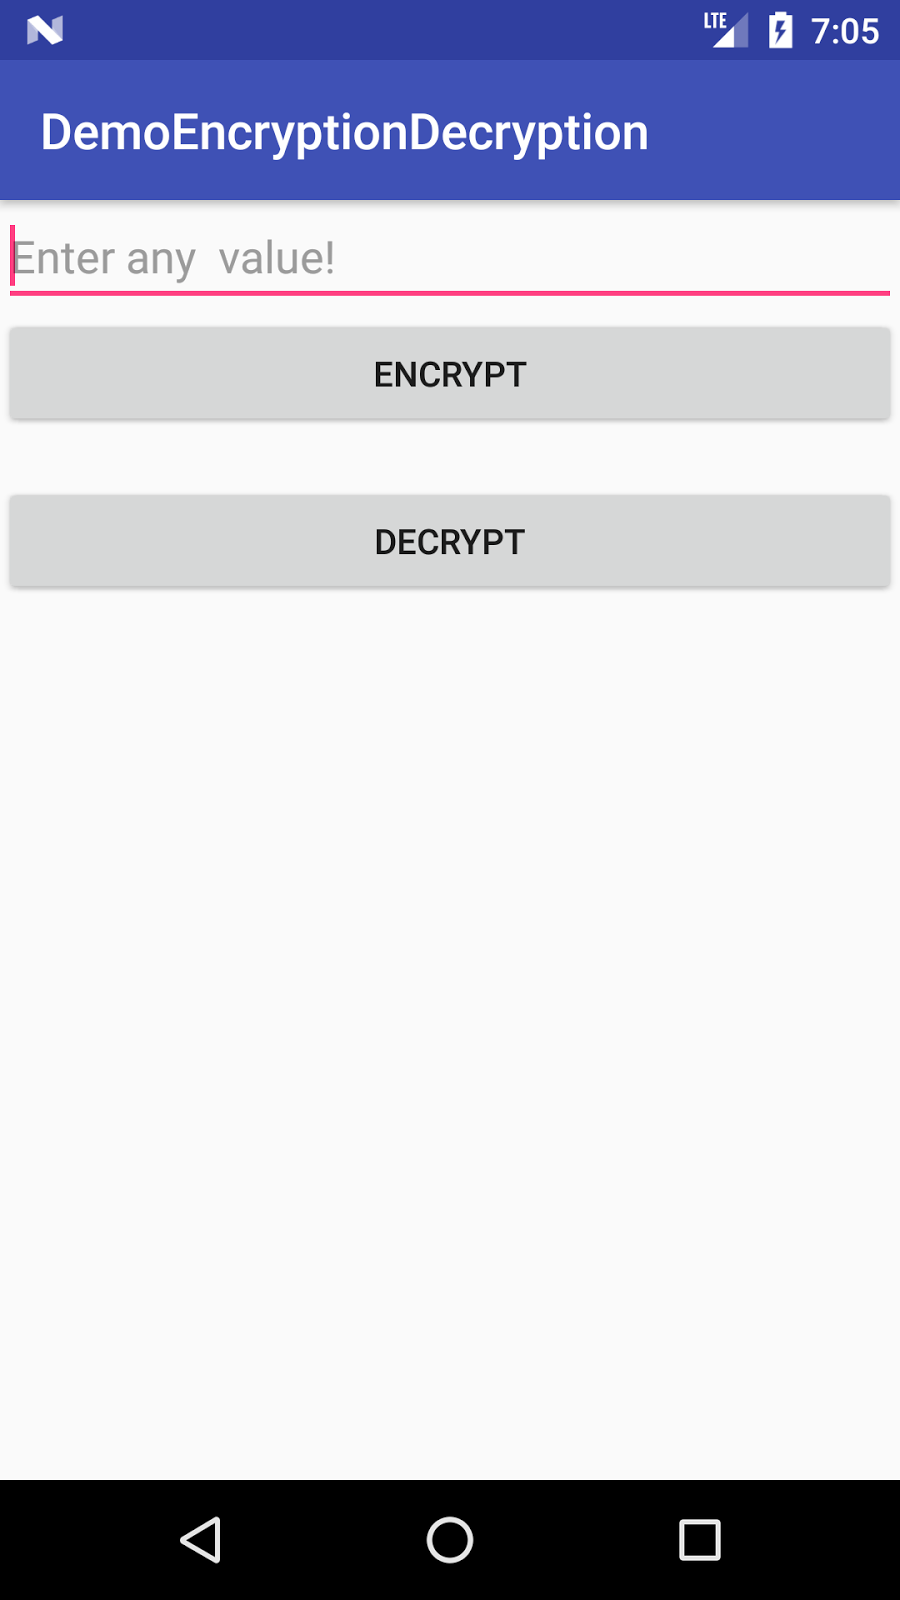 anil@Android: Encryption Decryption Example Android Using AES Alogirthm